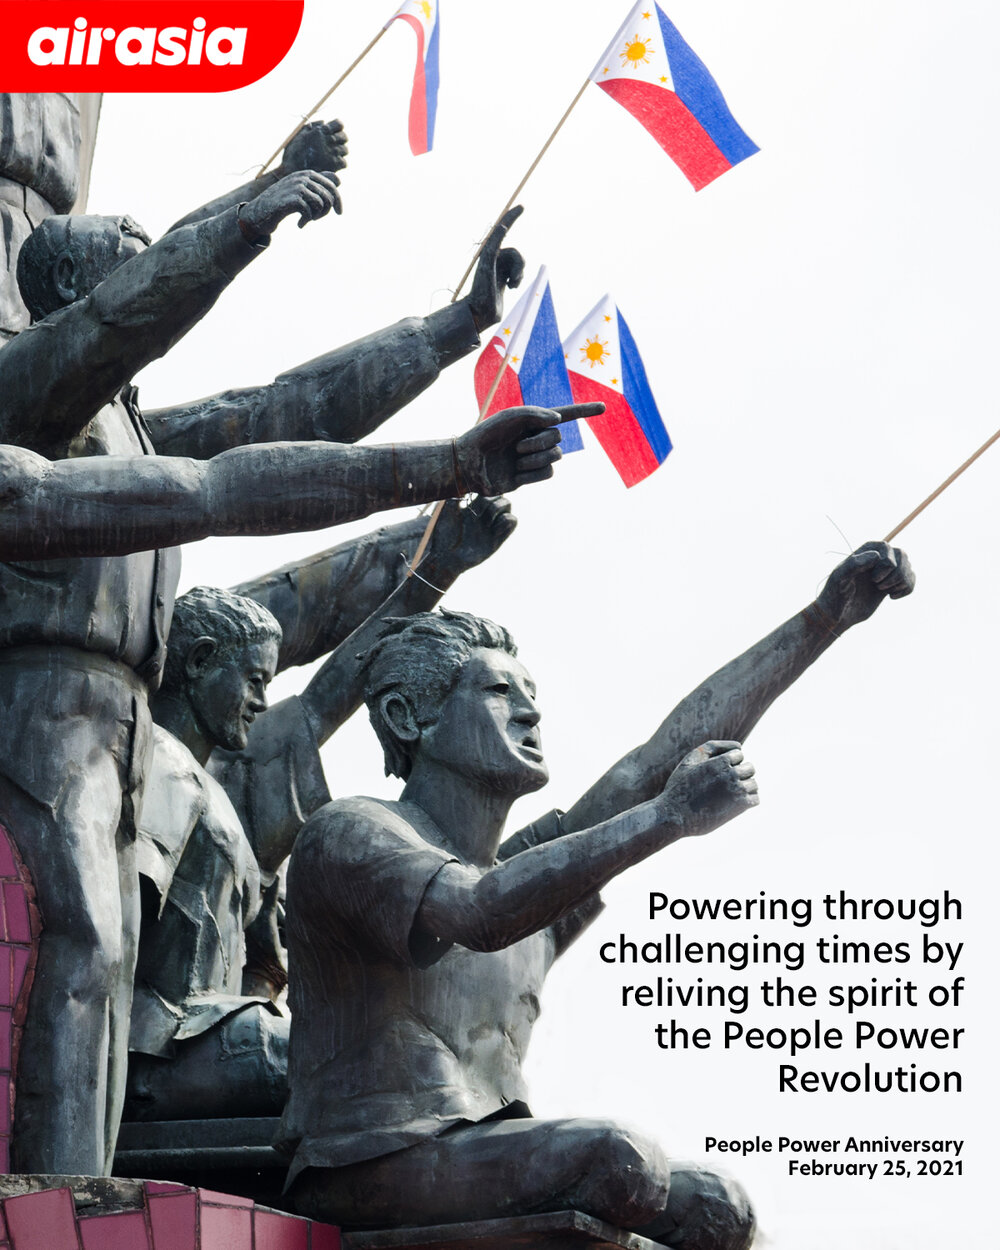 Allstars relives the spirit of the People Power Revolution